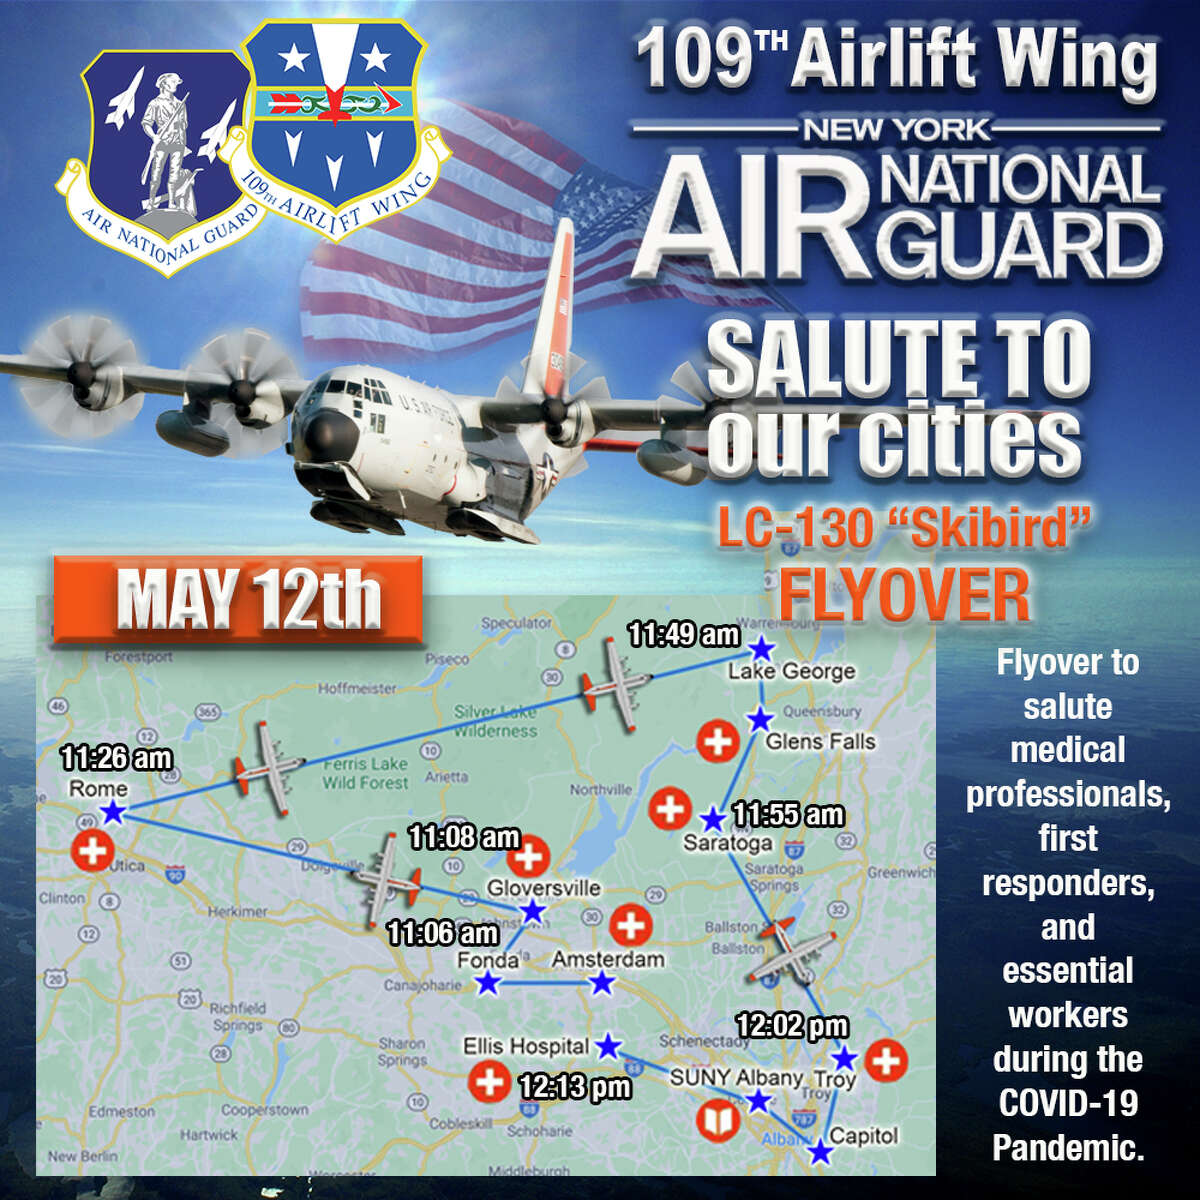 Flyover planned May 12